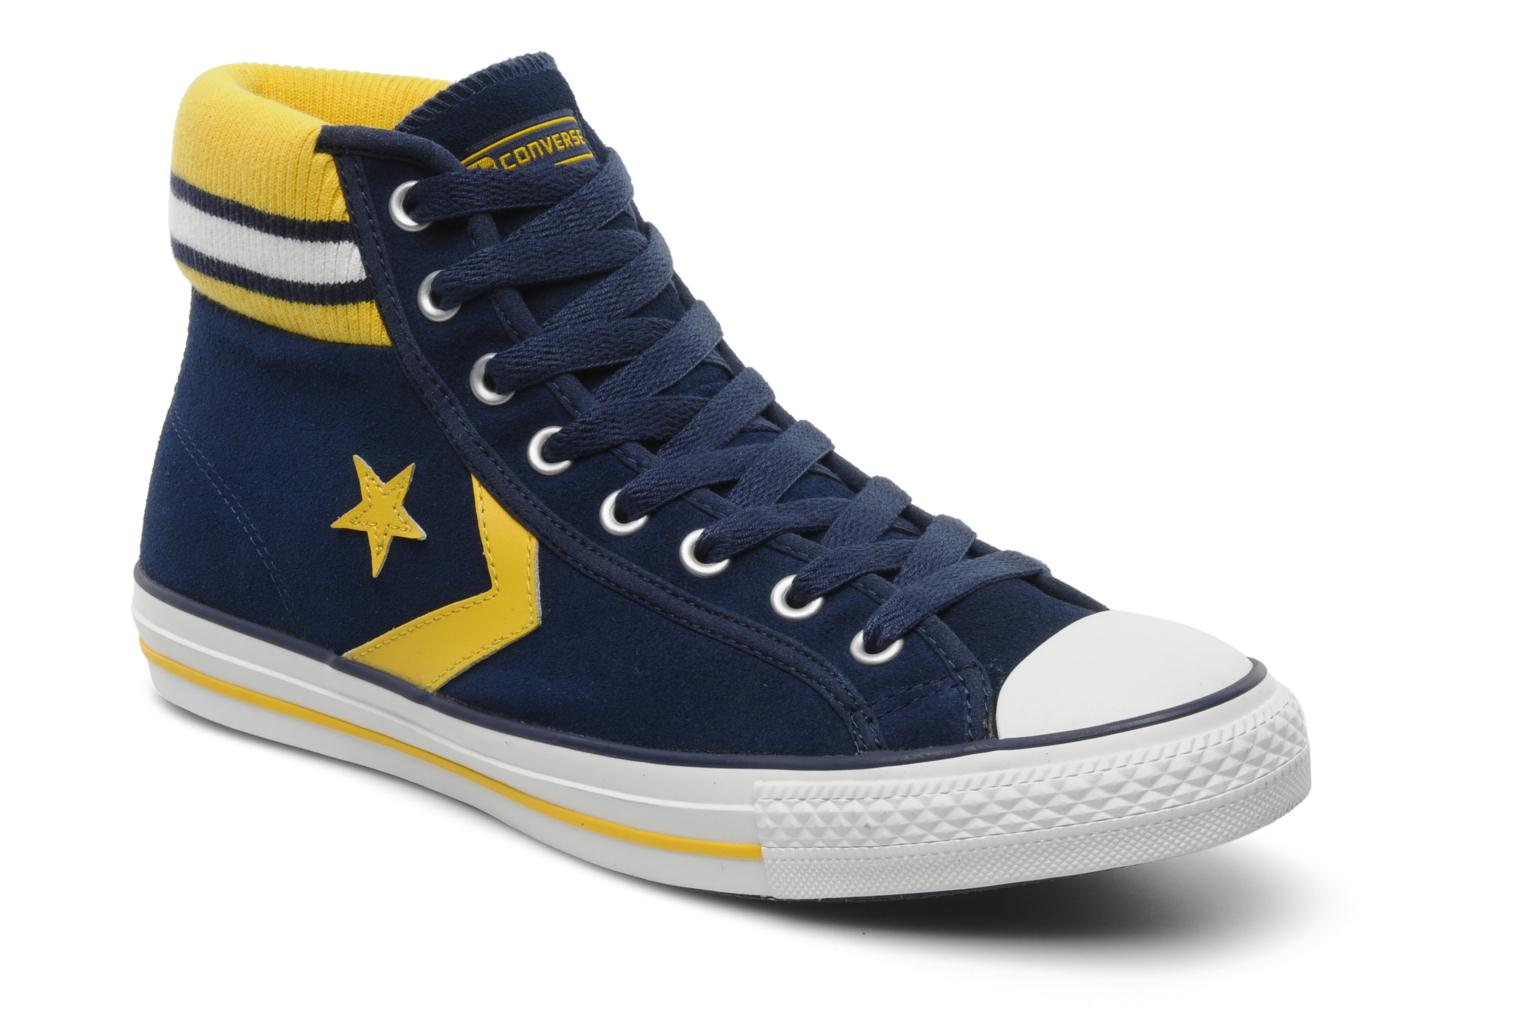 813aa3a729c0 ... where to buy trainers converse star player cuff rib suede mid m blue  detailed view pair ...